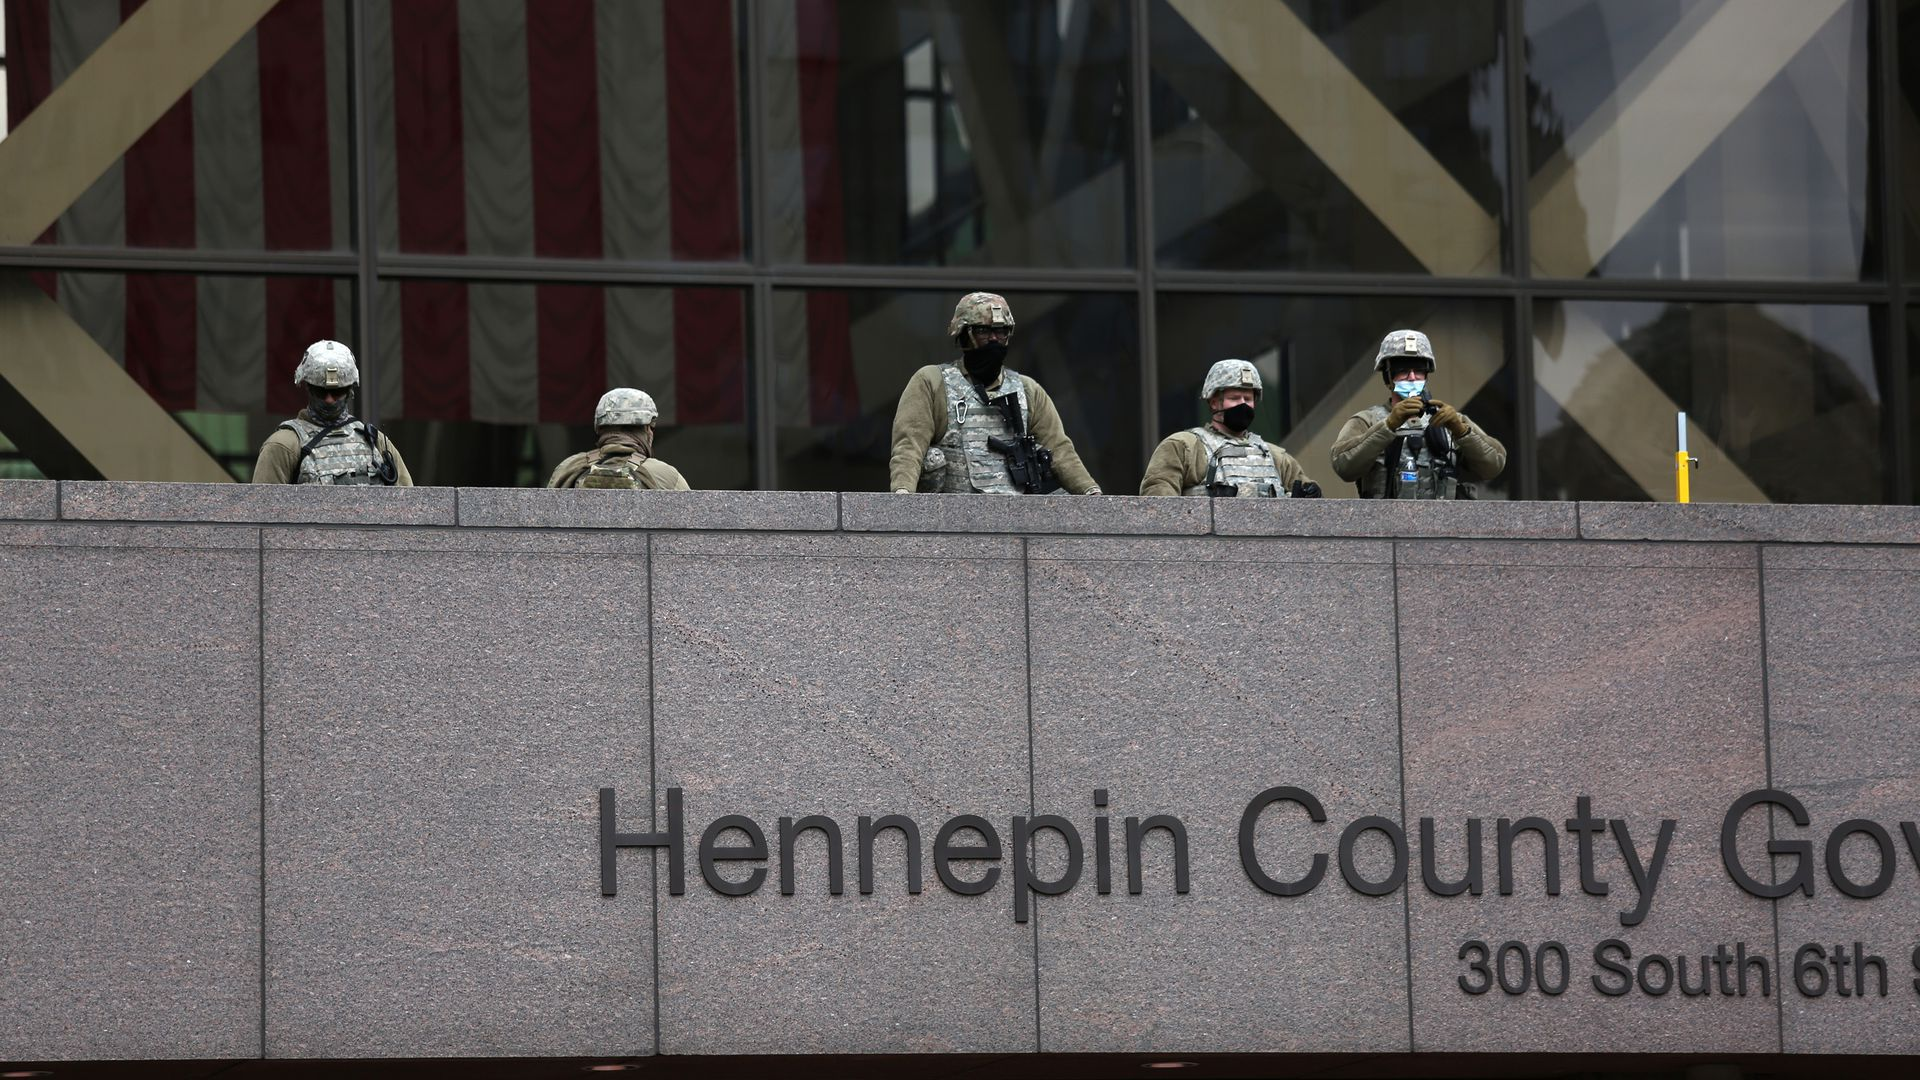 National Guard members at the Hennepin County Government Center